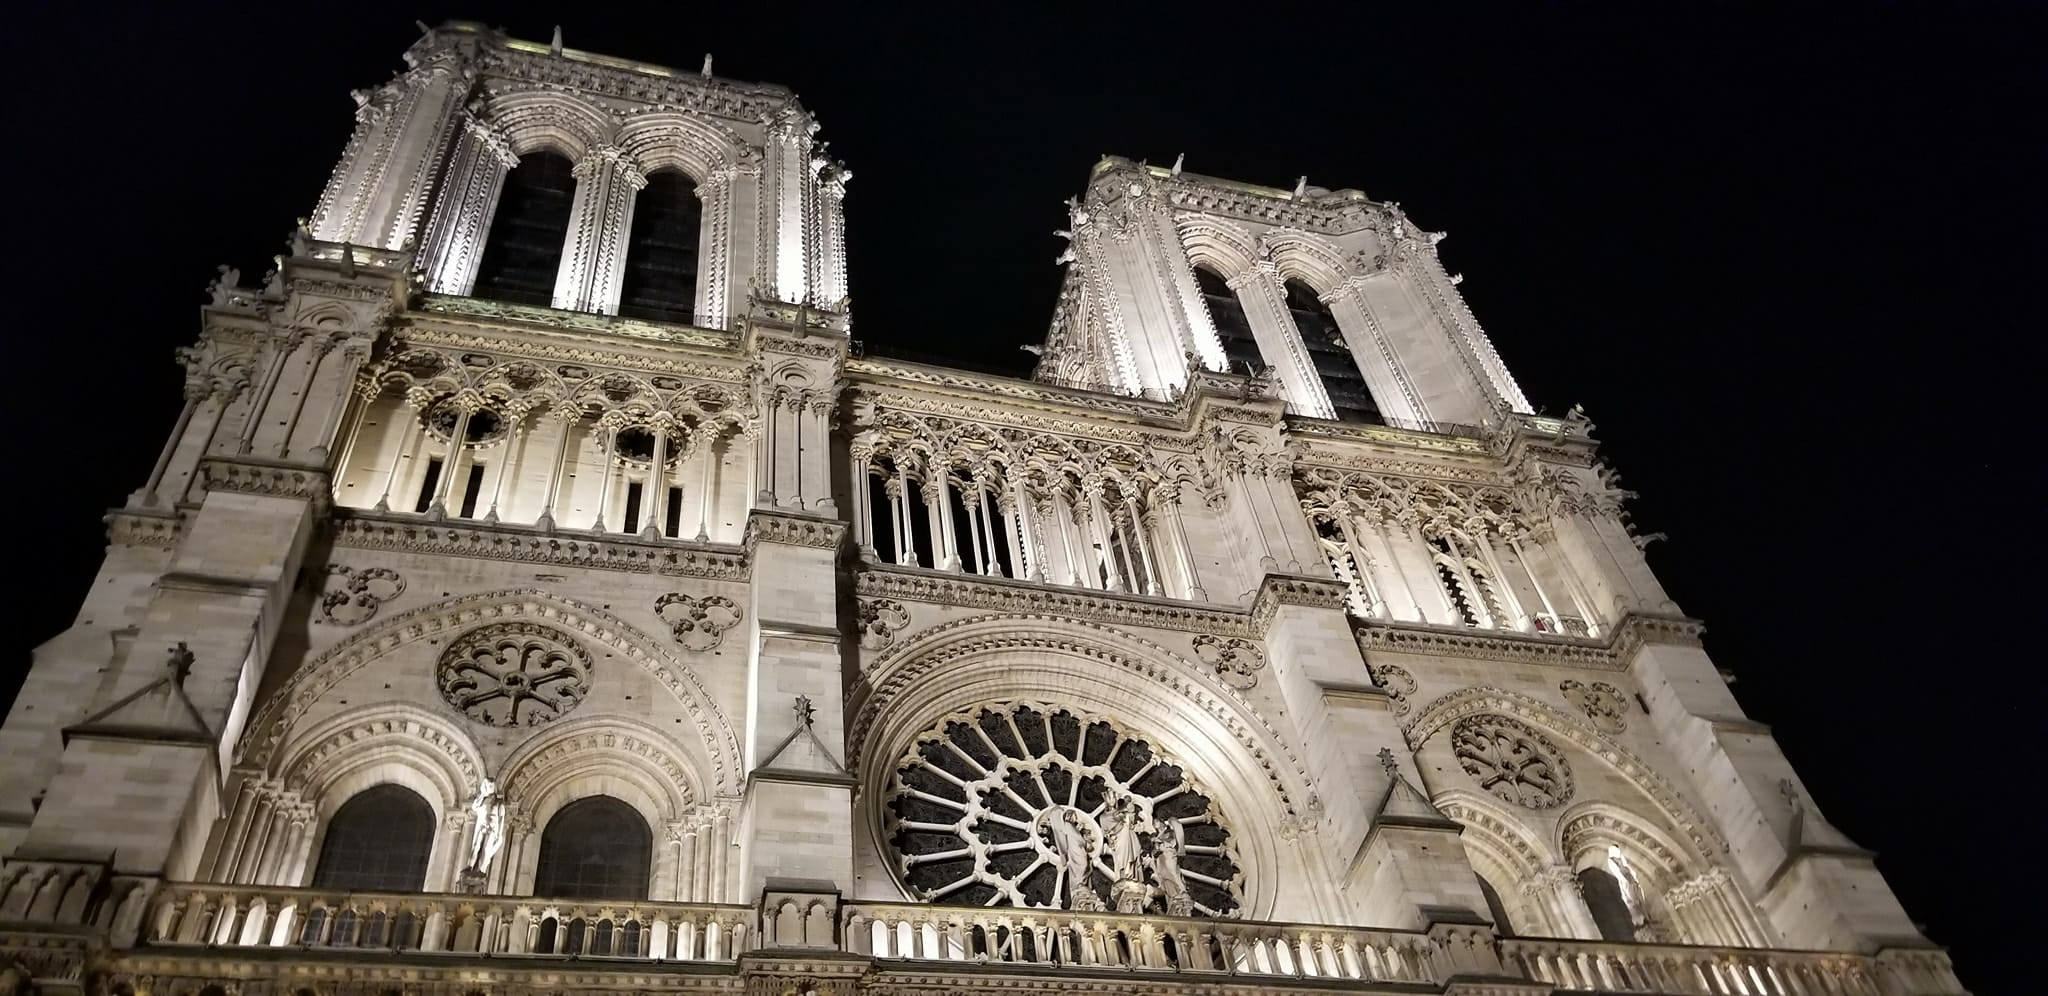 CAPAStudyAbroad_London_Fall2017_From Thaddeus Kaszuba - Notre Dame Cathederal in Paris.jpg